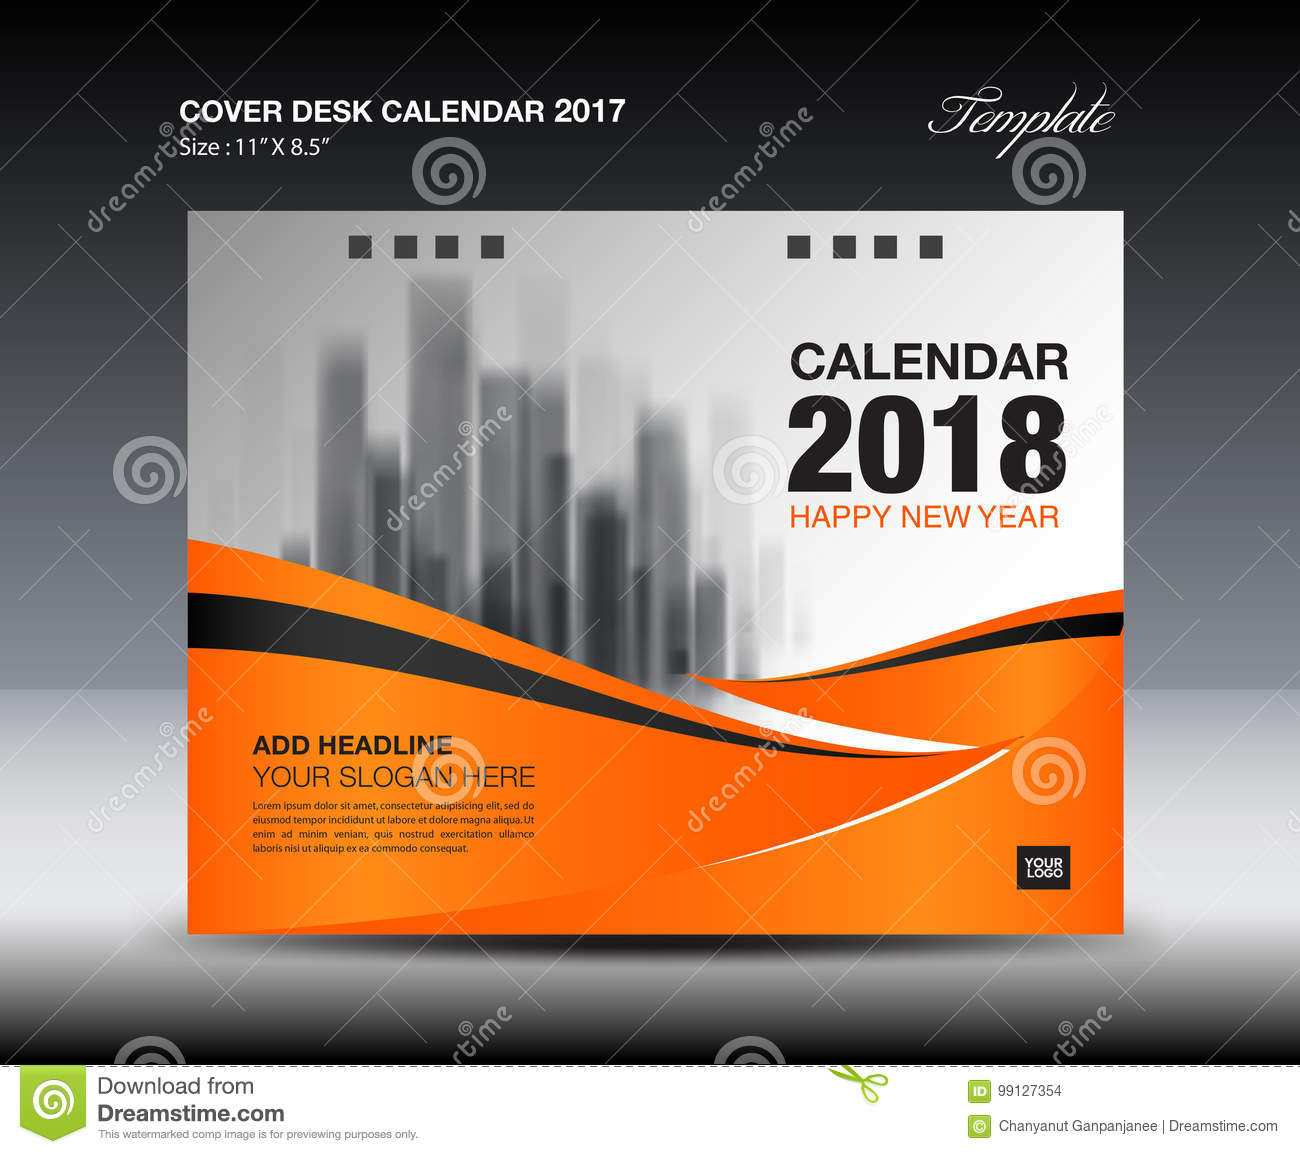 24 Standard Calendar Flyer Template in Word by Calendar Flyer Template